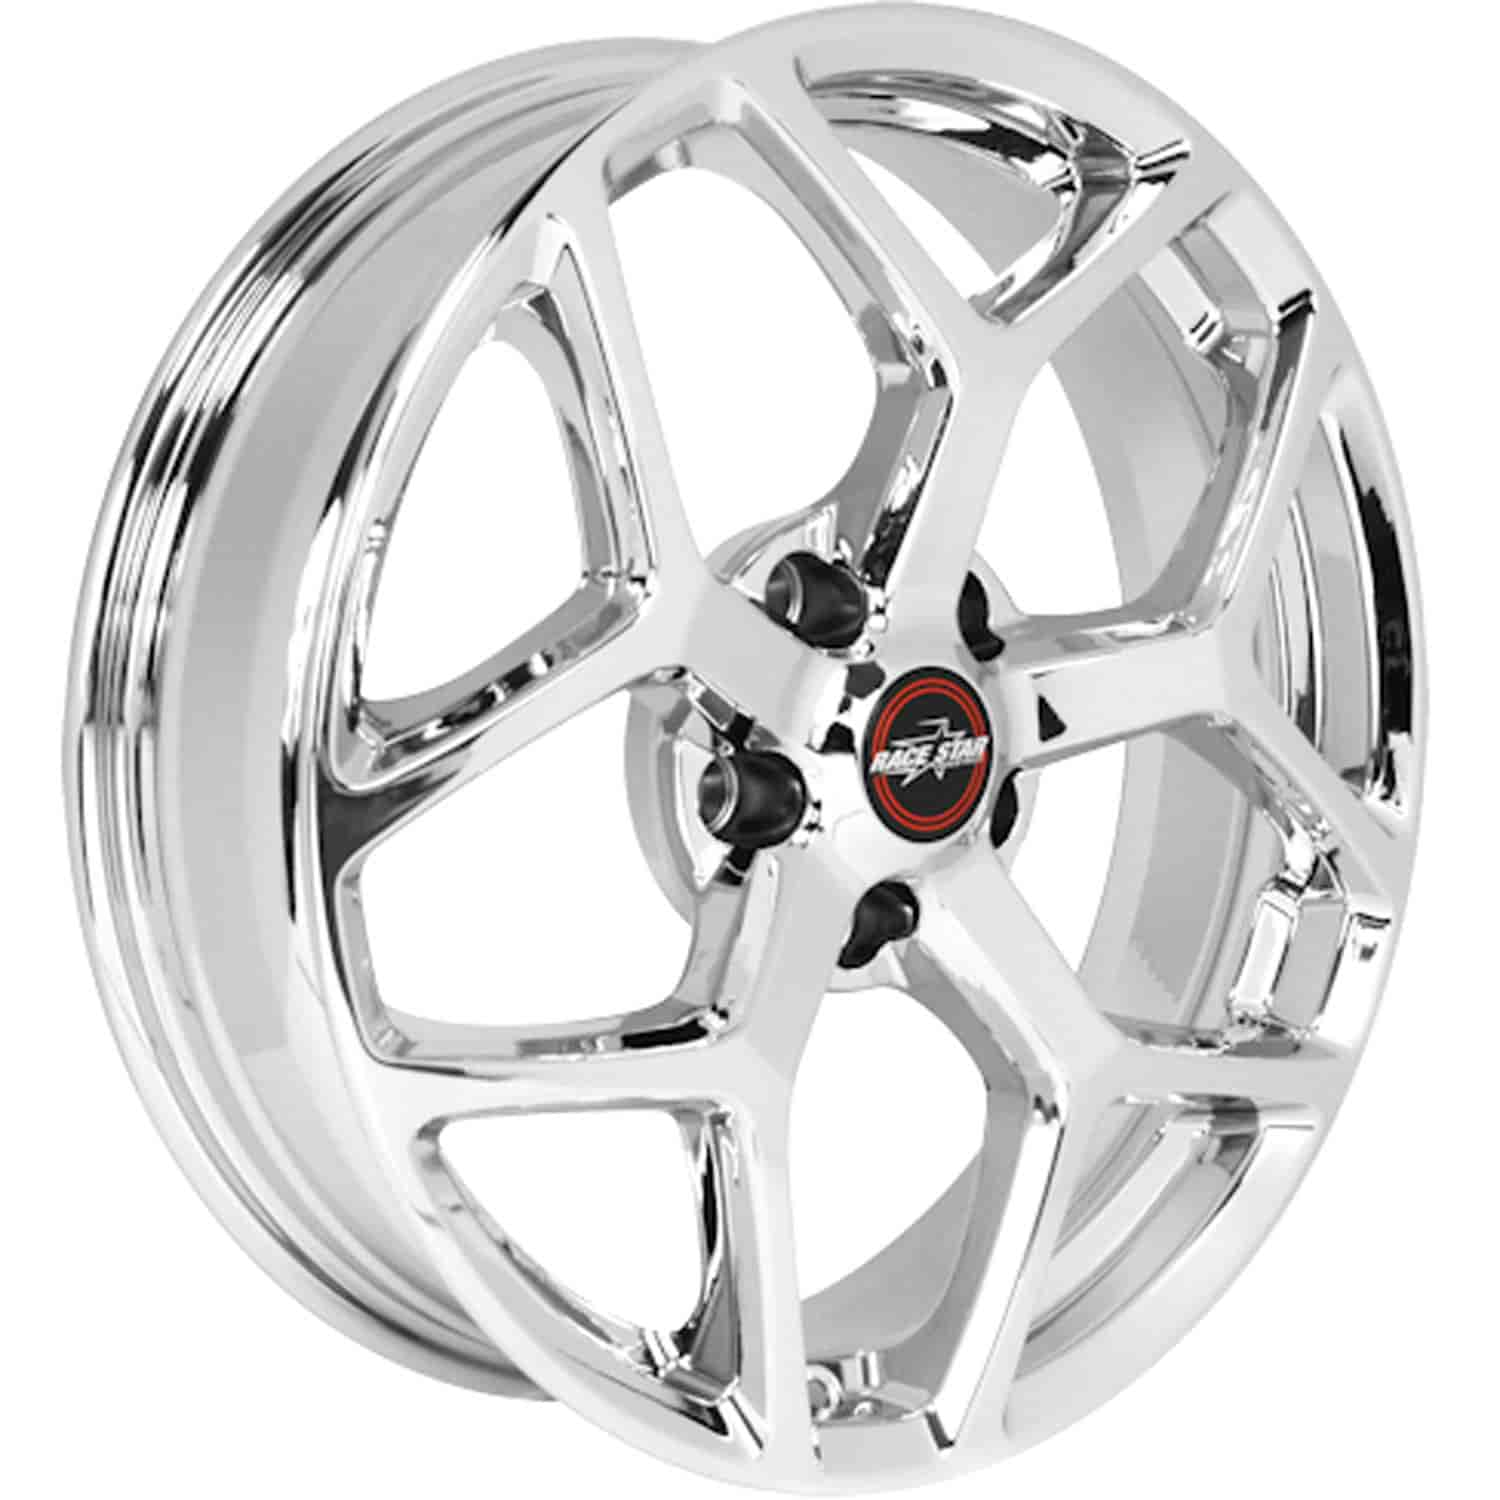 Race Star Wheels 95-850247C